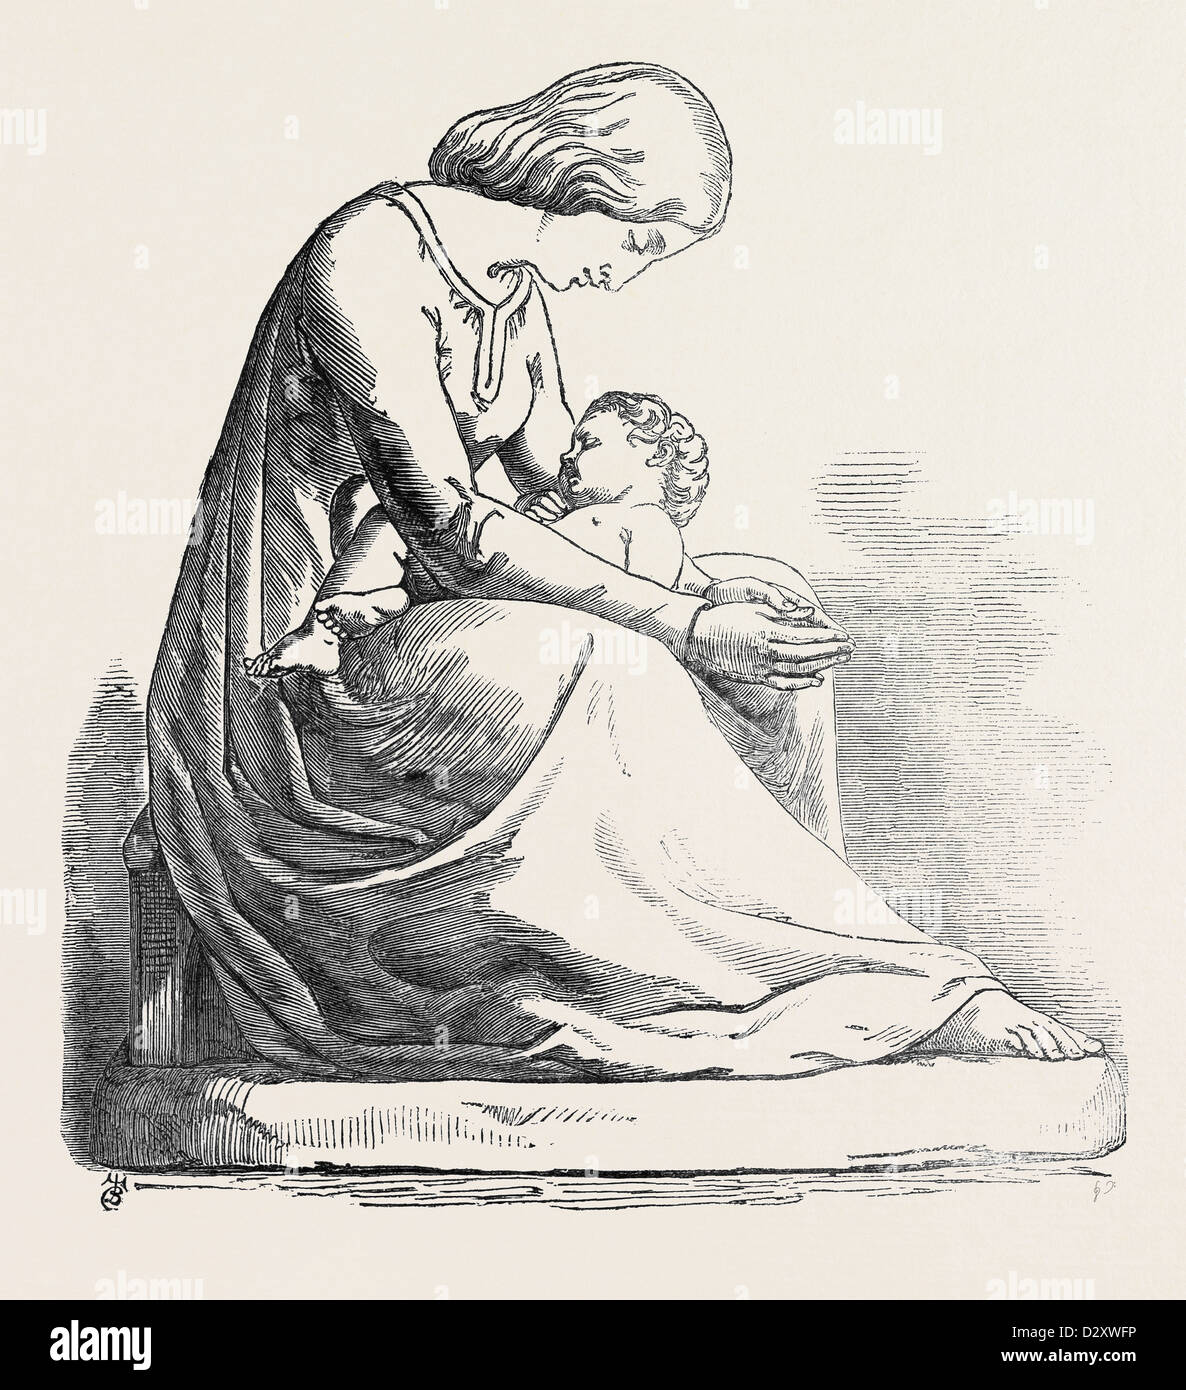 THE MOTHER'S PRAYER. (SCULPTURE), BY W.C. MARSHALL, R.A., EXHIBITION OF THE ROYAL ACADEMY - Stock Image